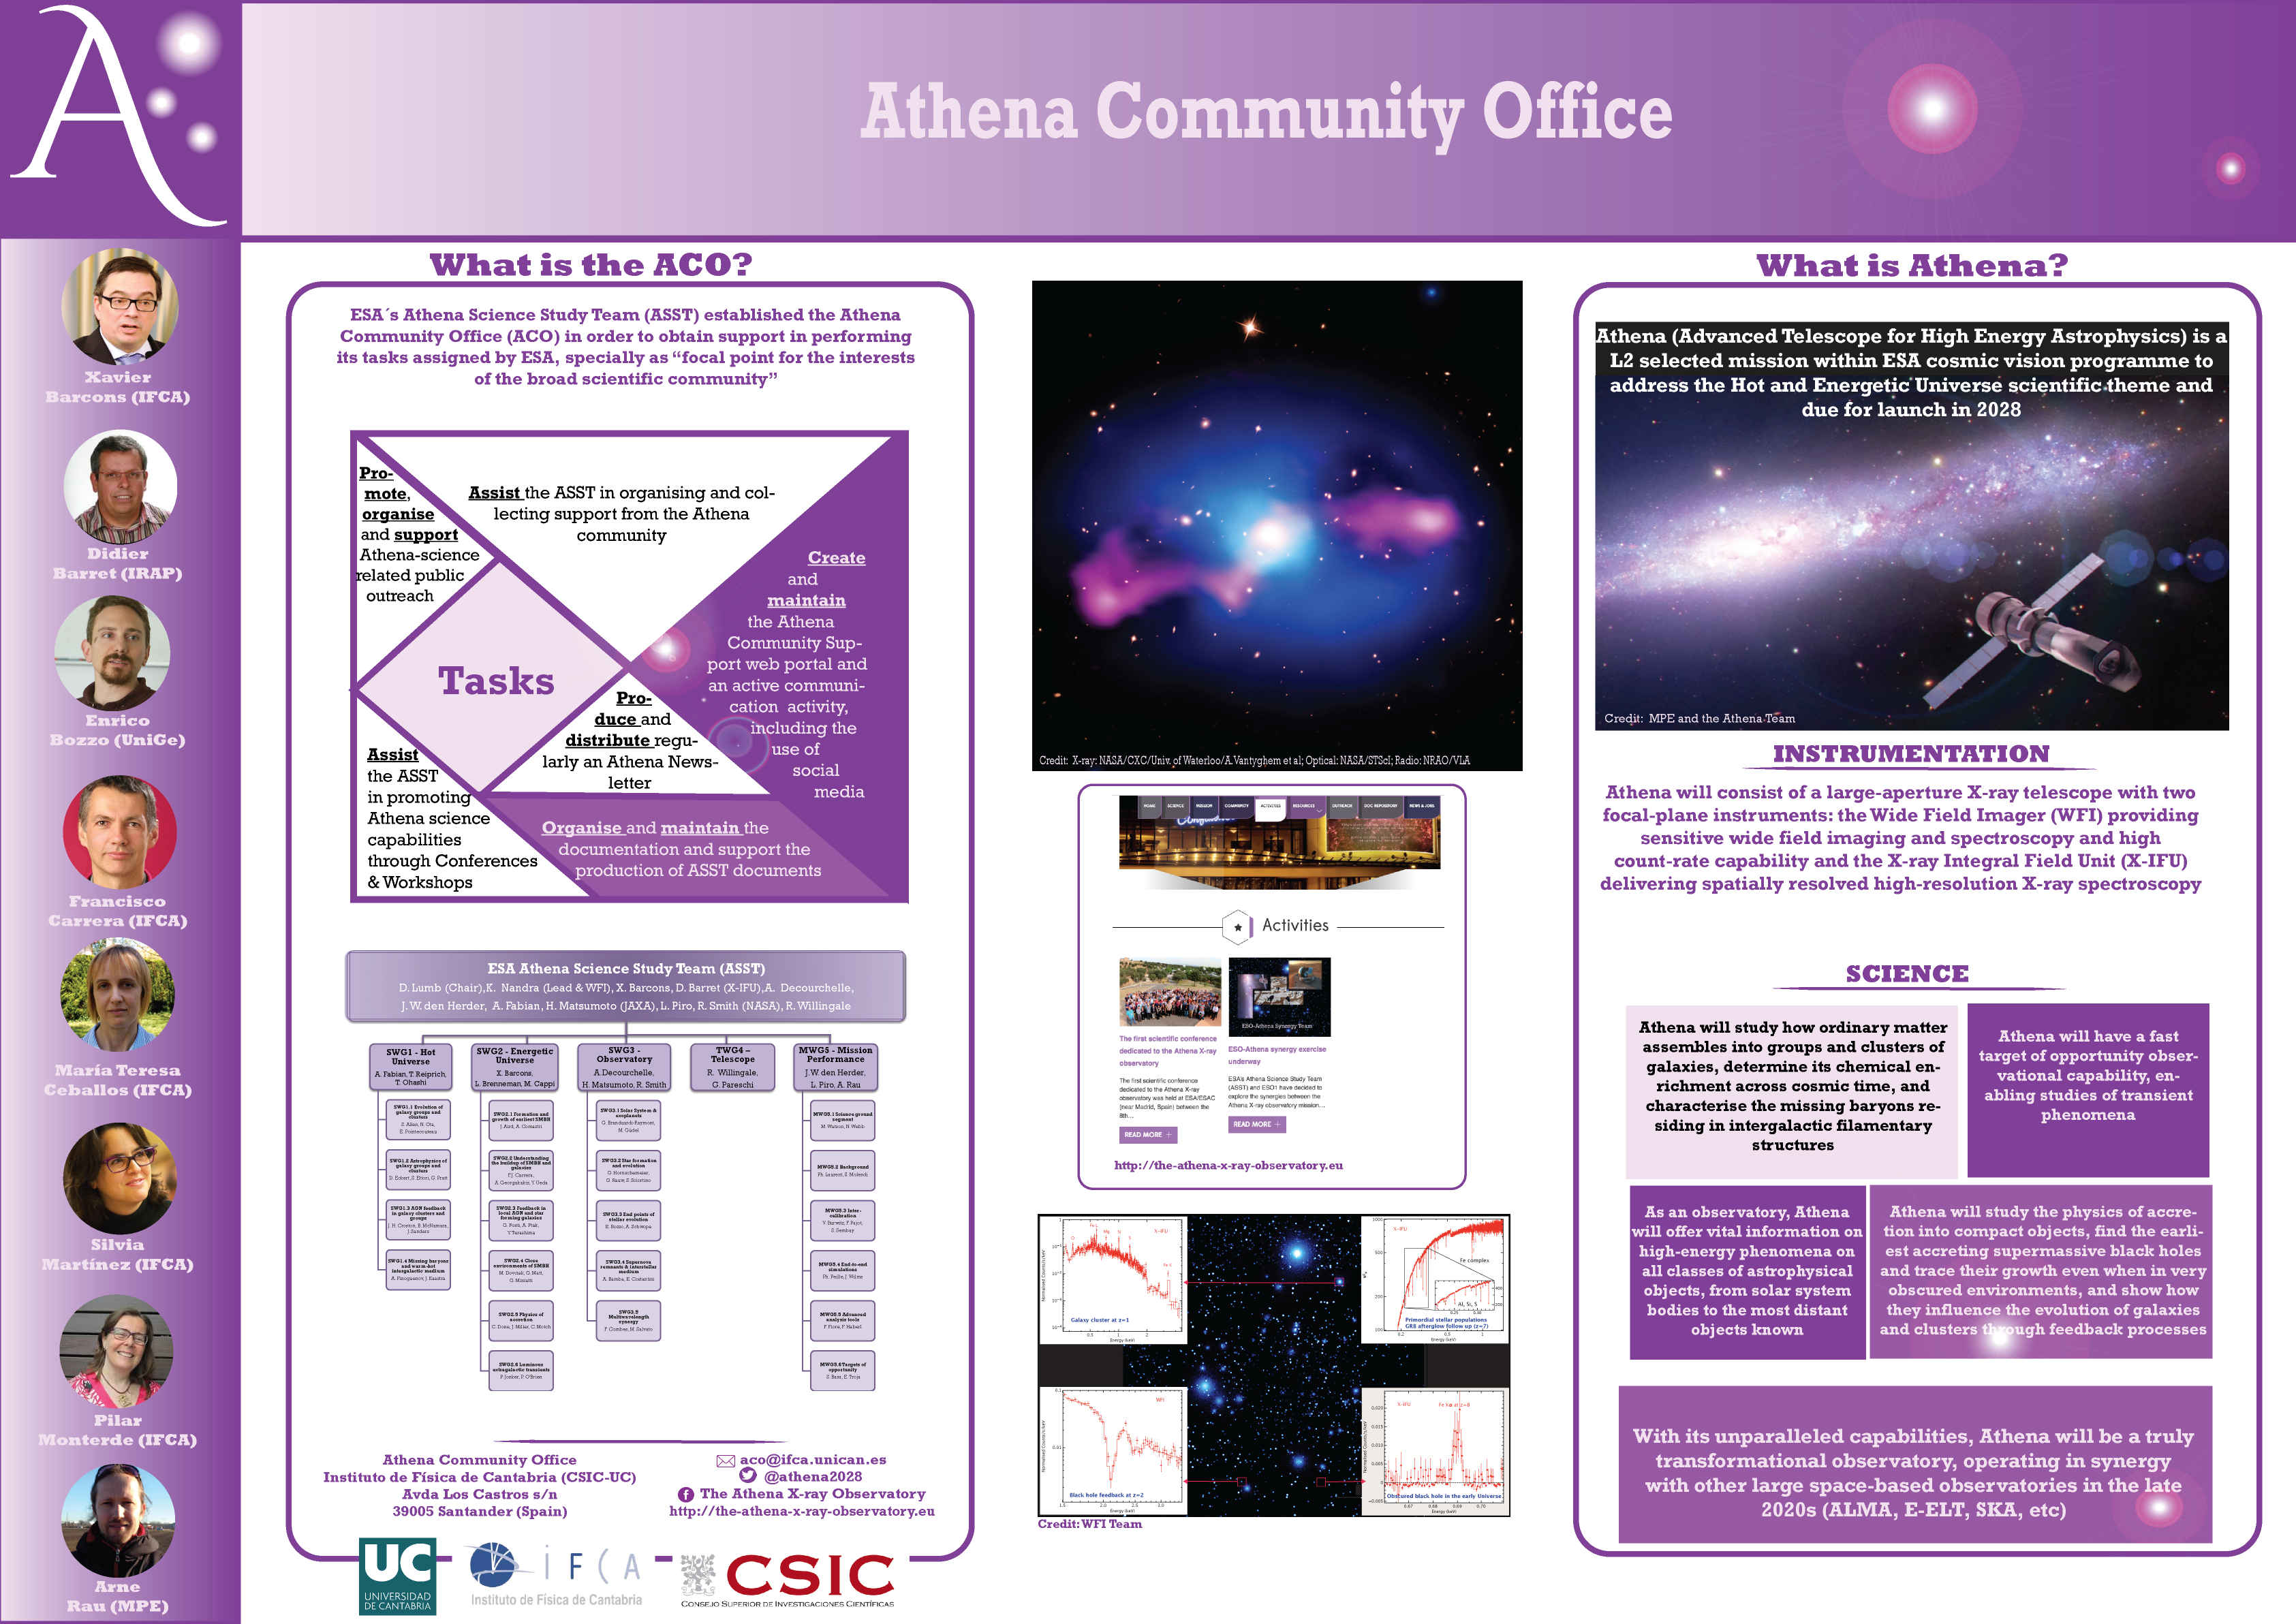 Athena Community Office launch